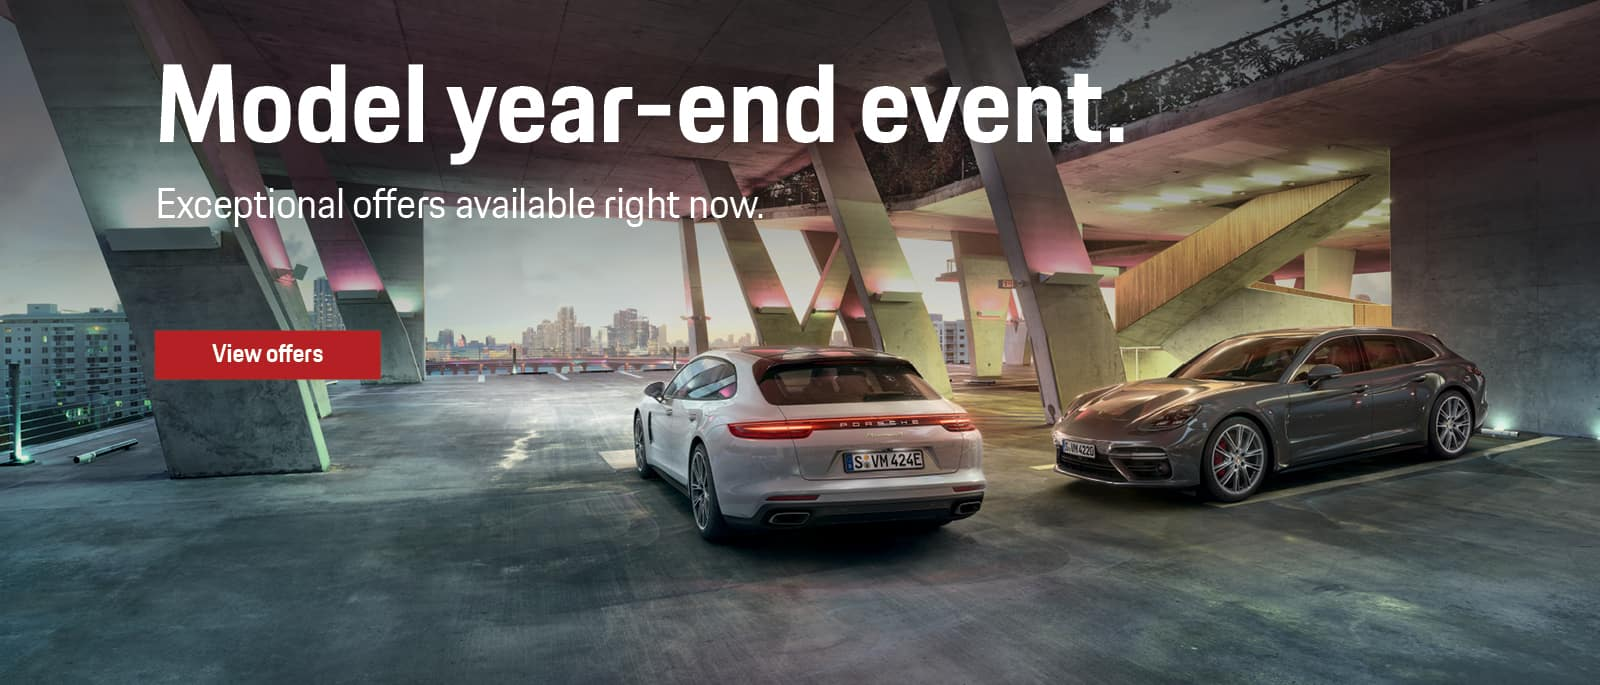 model year end event